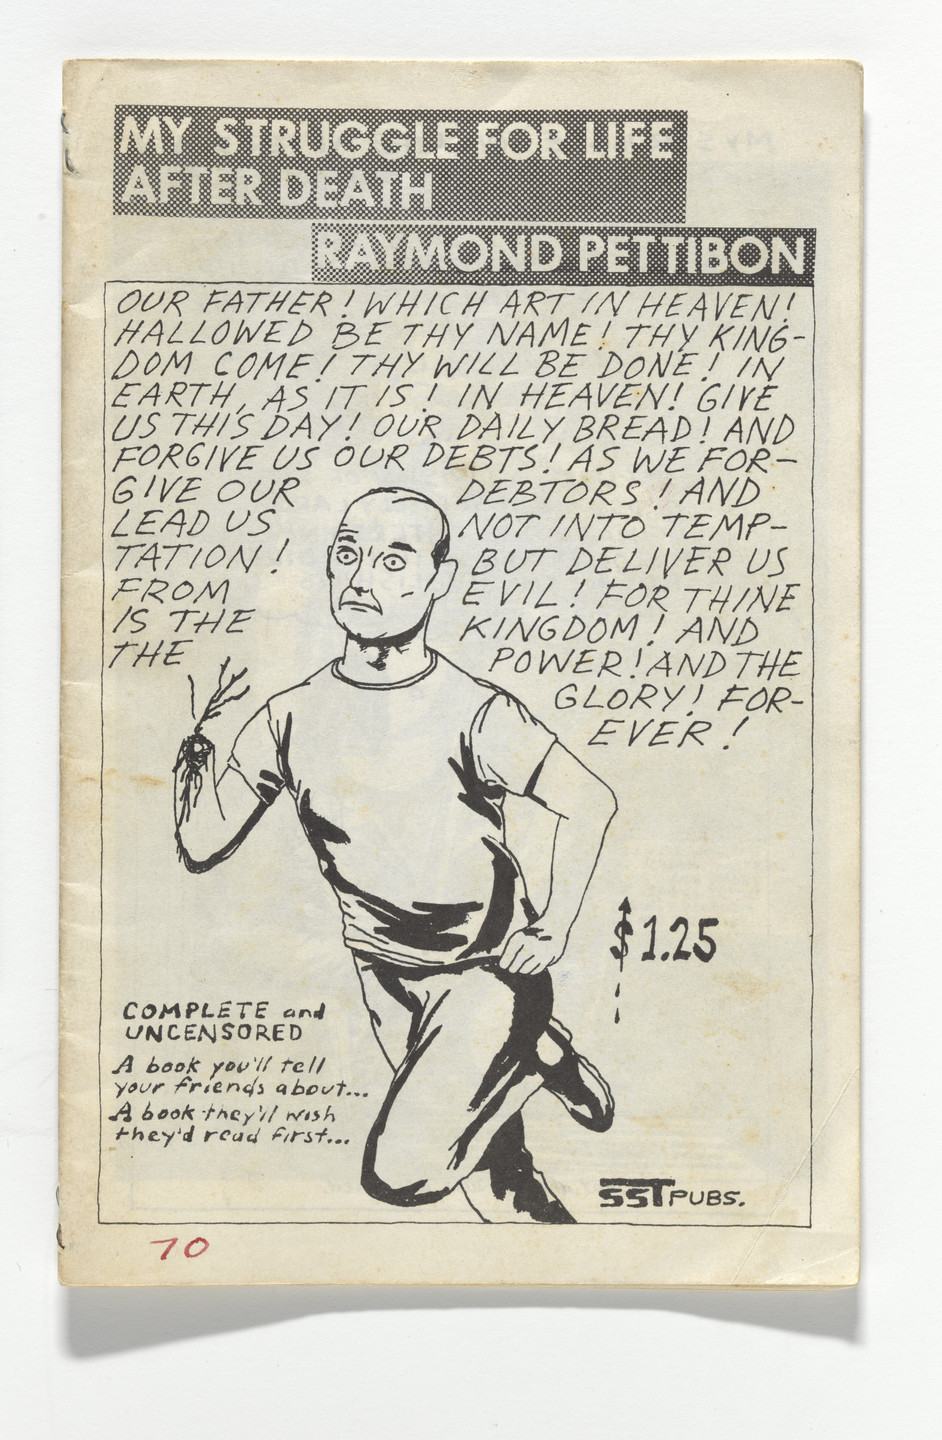 Raymond Pettibon. My Struggle for Life After Death. 1982